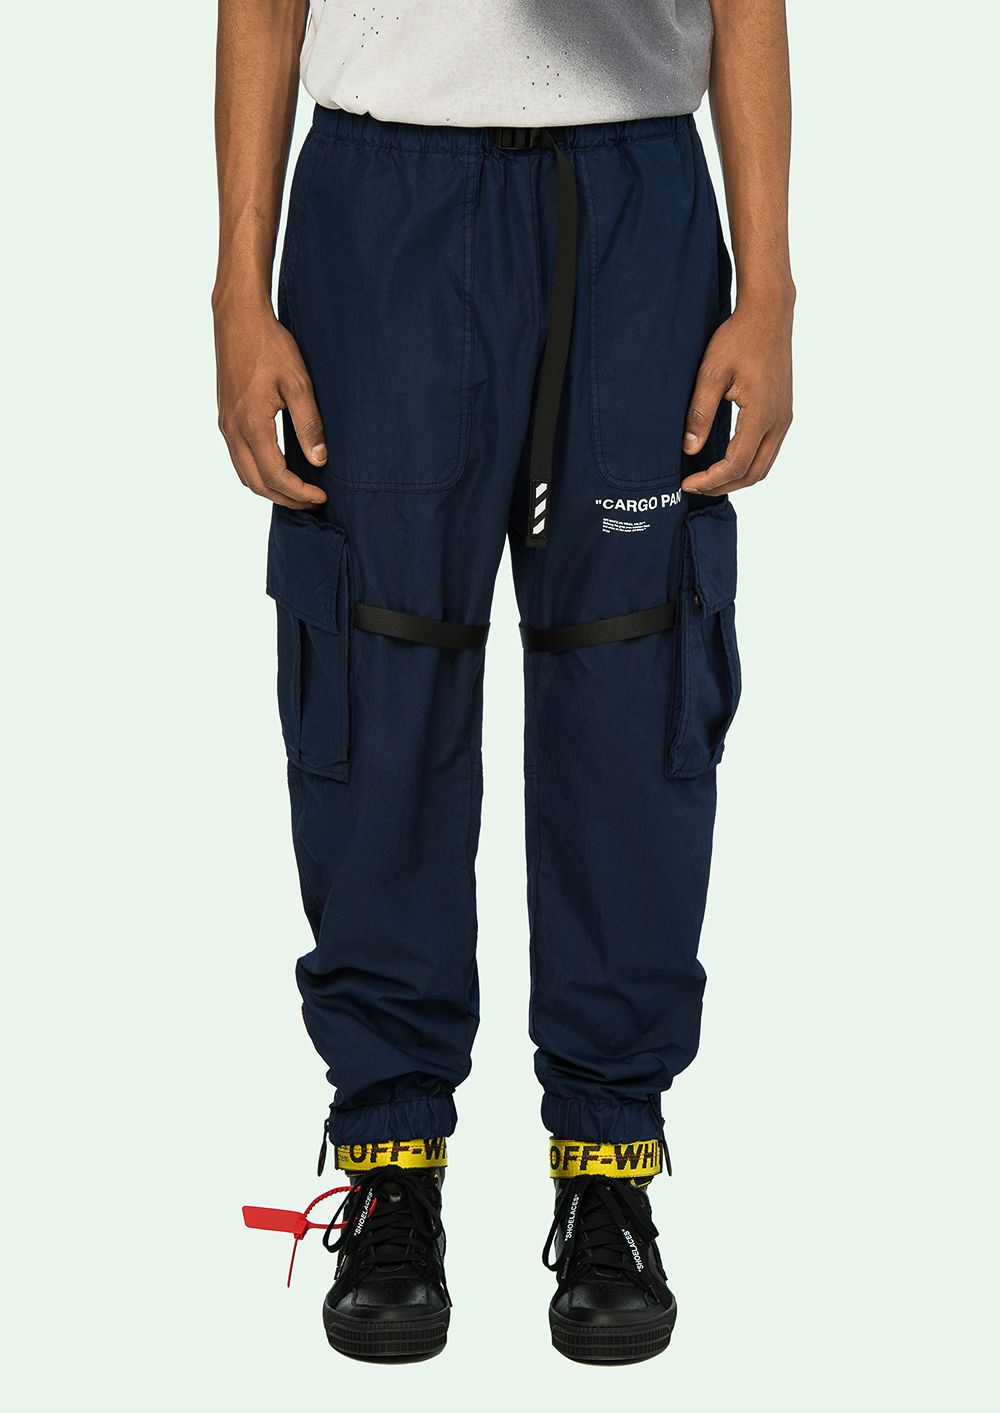 df5a12779192 OFF WHITE - Cargo Pants - OffWhite